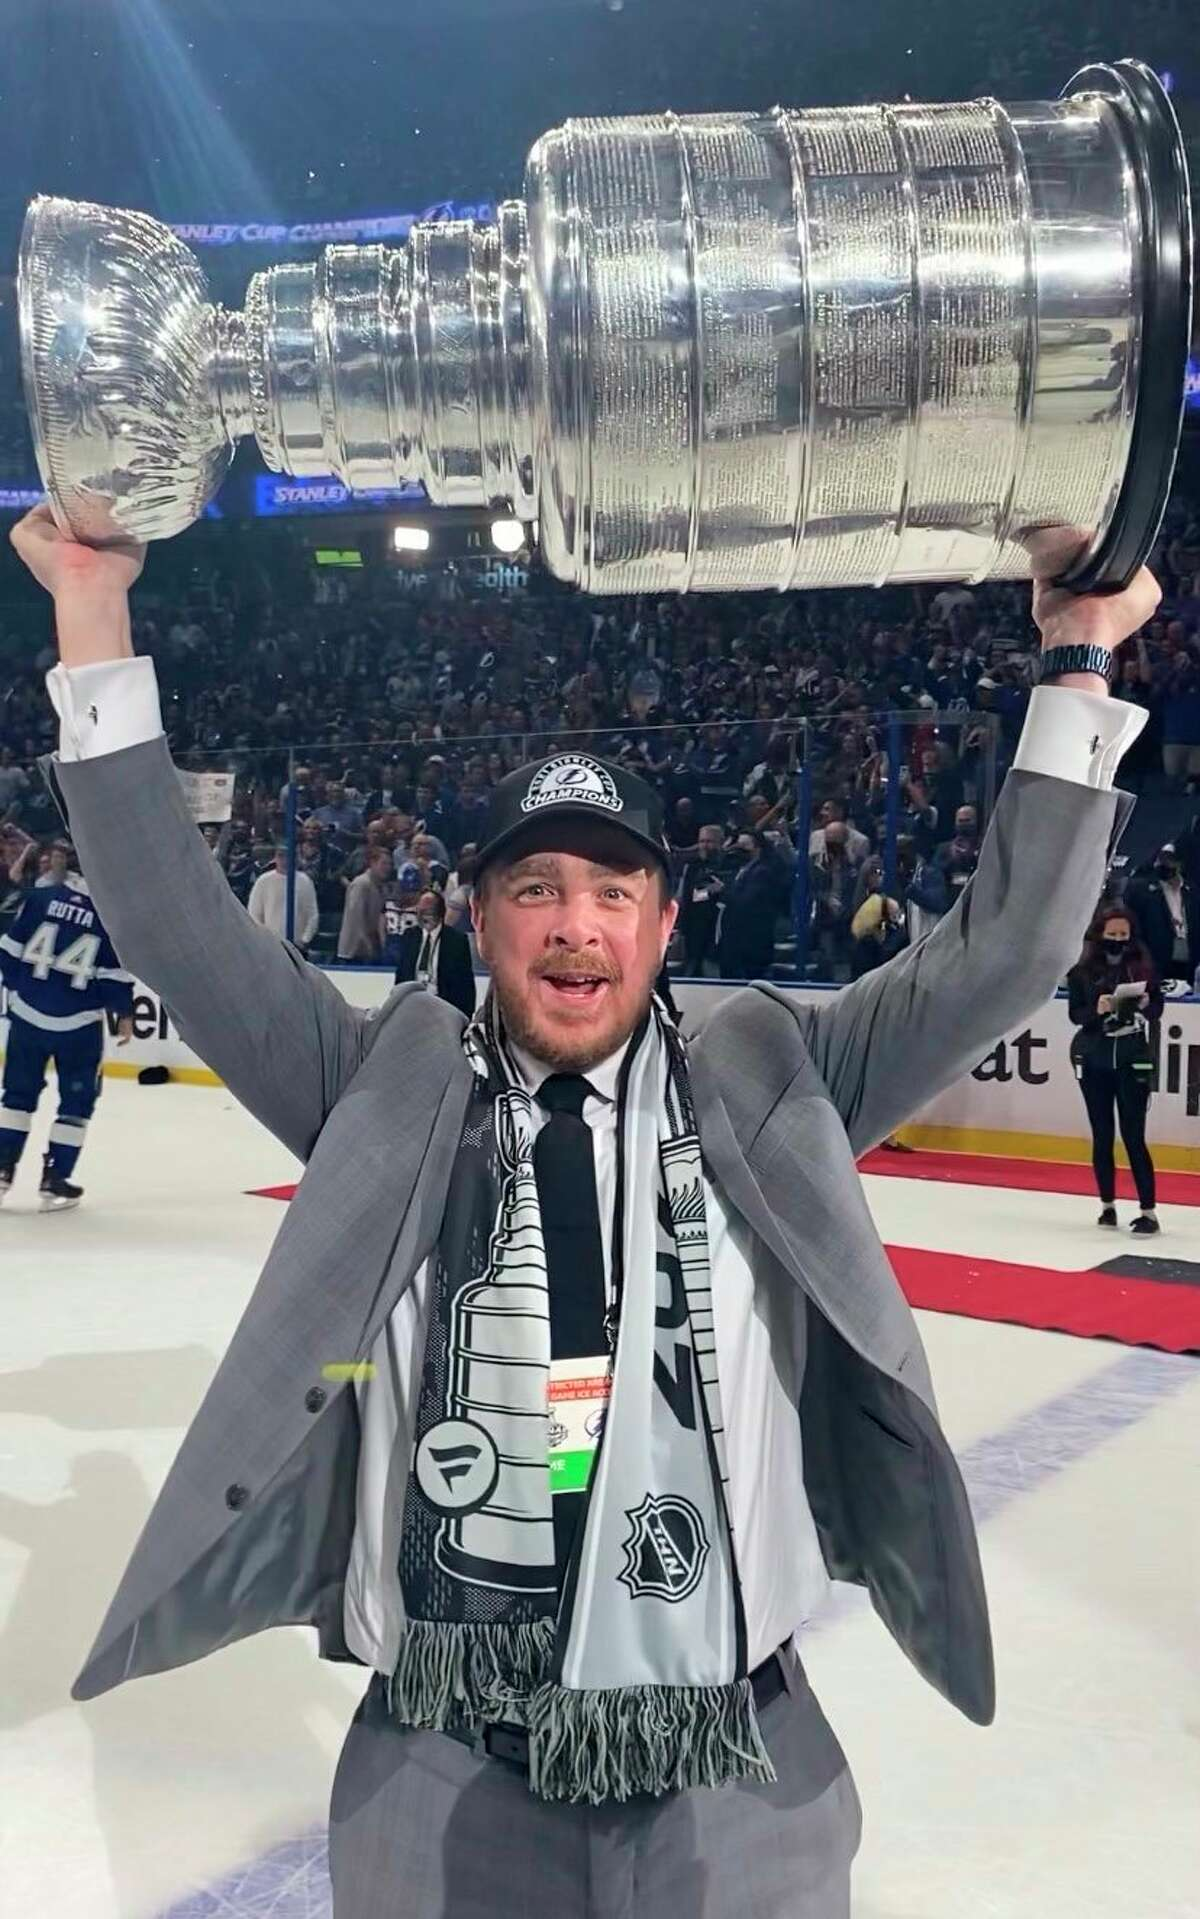 Big Rapids native and Tampa Bay video coordinator Brian Garlock, pictured here with the Stanley Cup after Tampa Bay won it, was unable to have the Cup in Big Rapids today. Ferris State News Services said the reason was because of COVID protocol and concerns. (Courtesy photo)